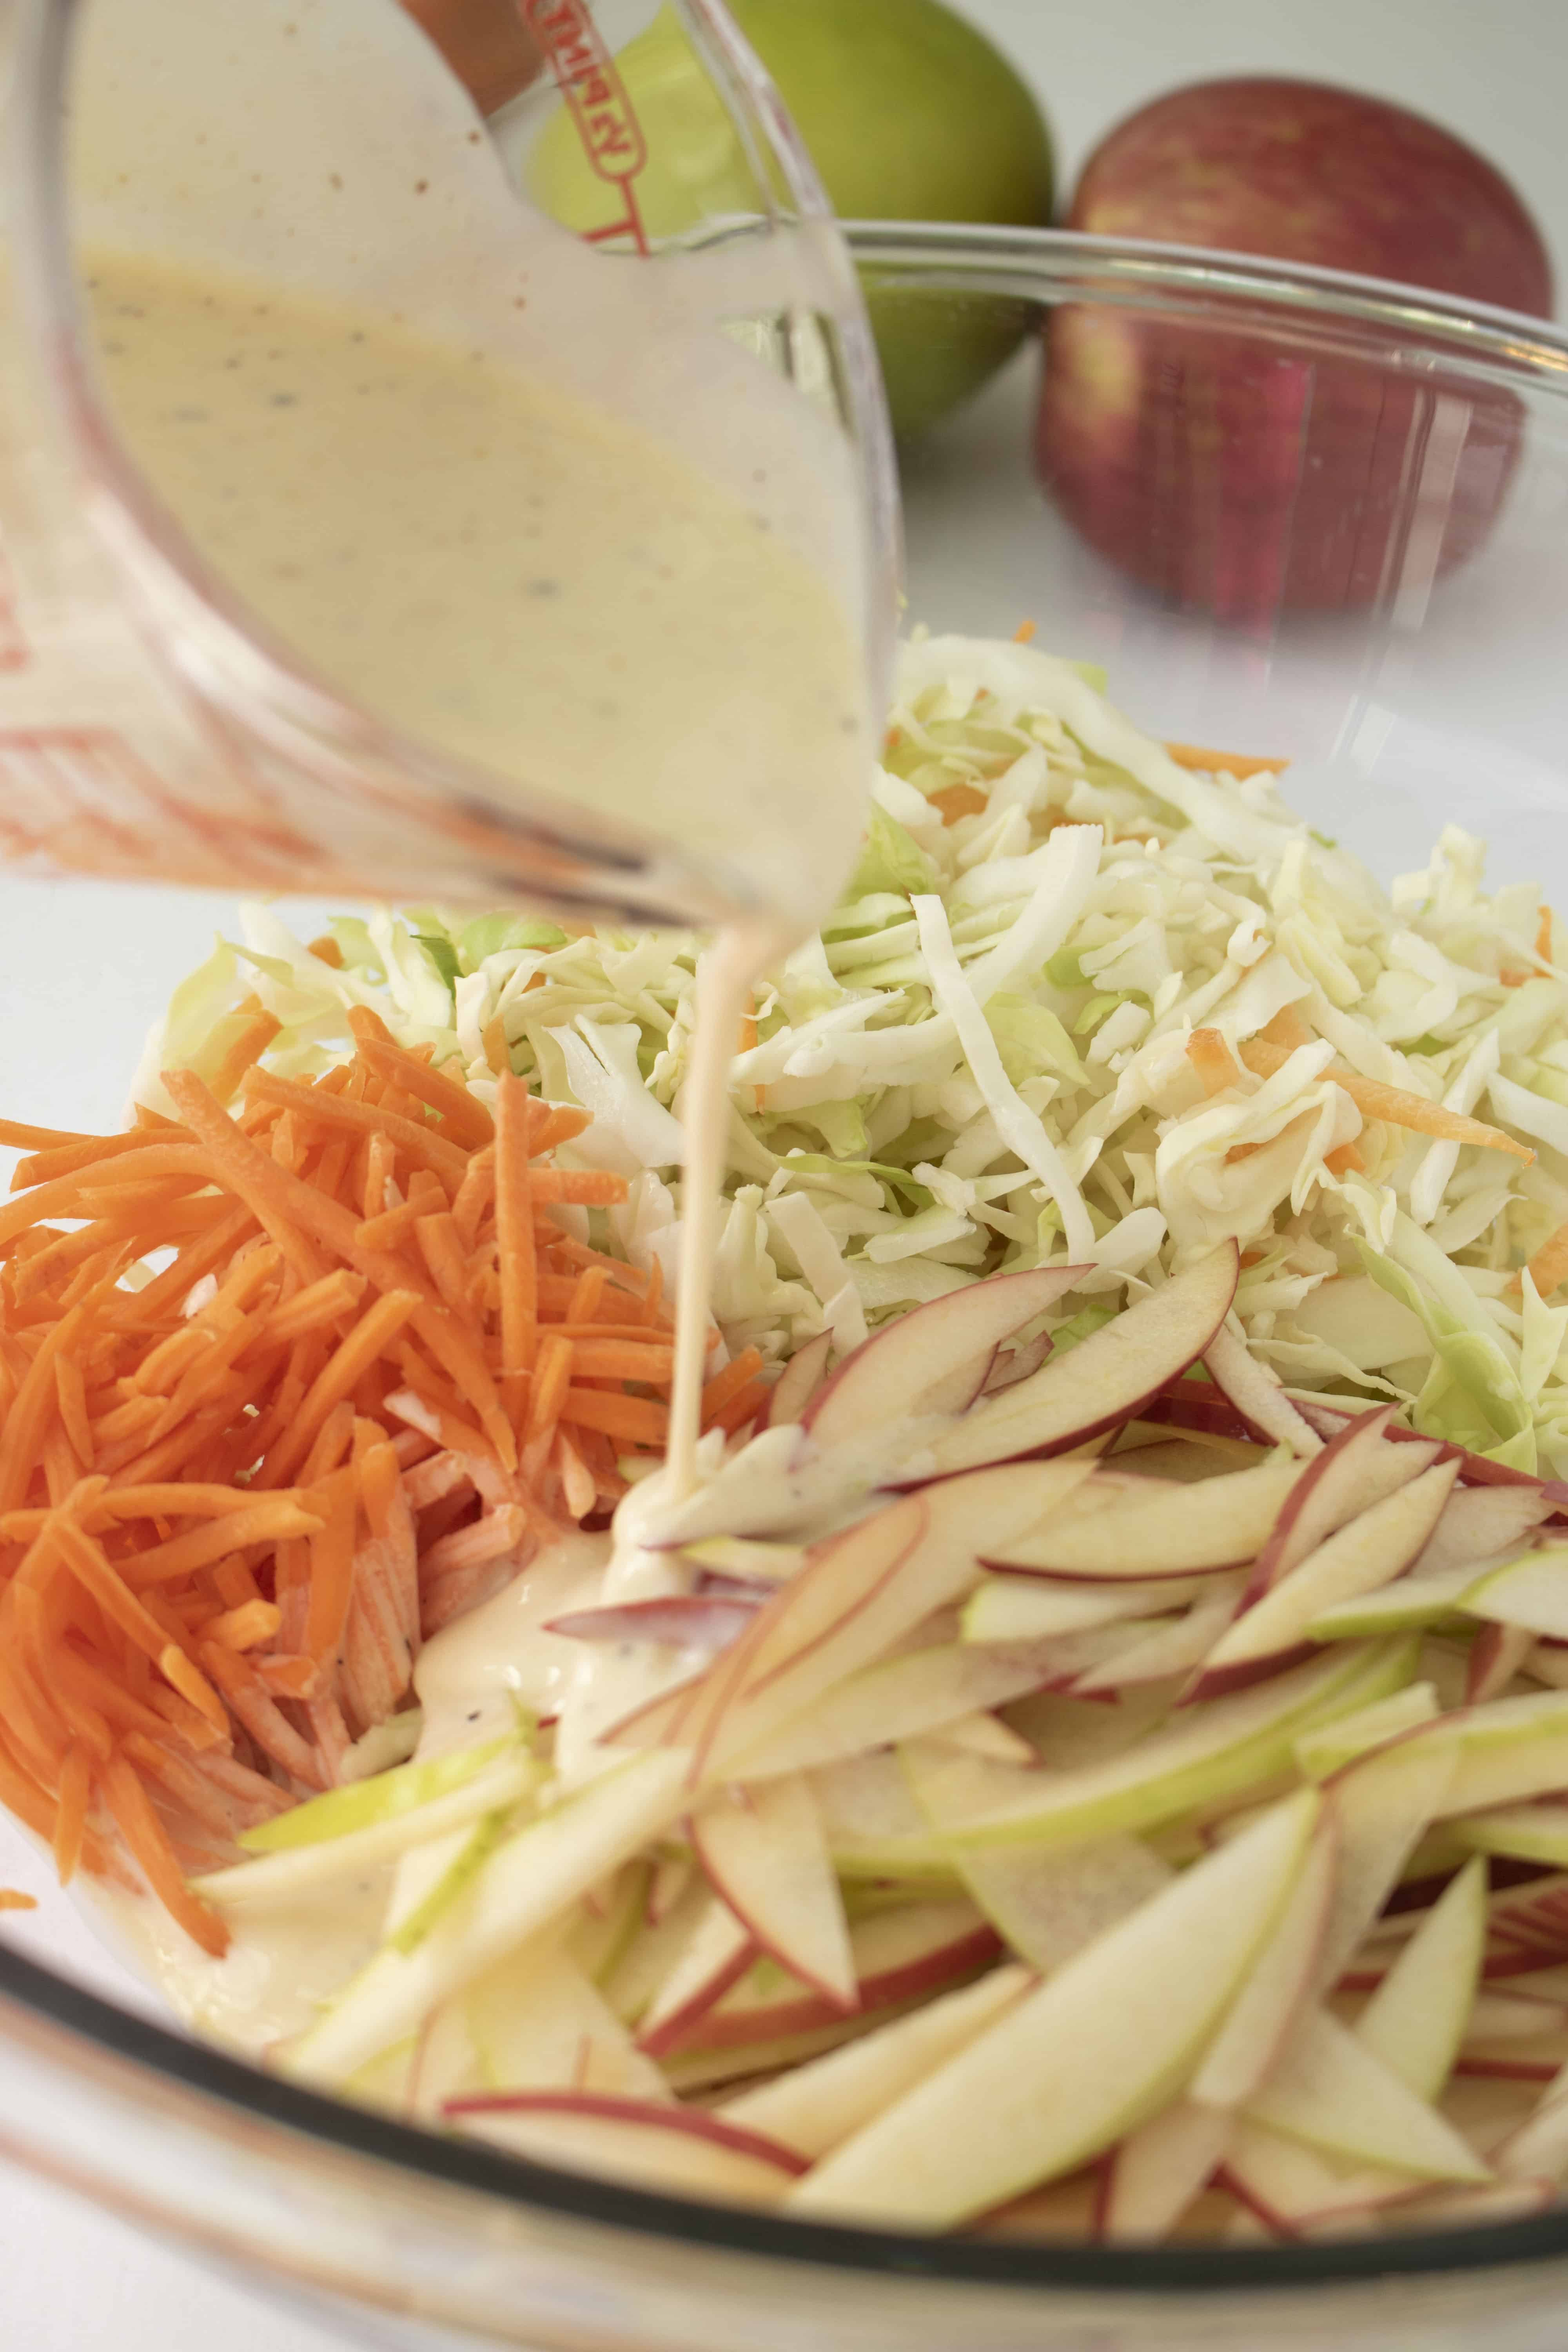 Dressing being pored onto slaw ingedients